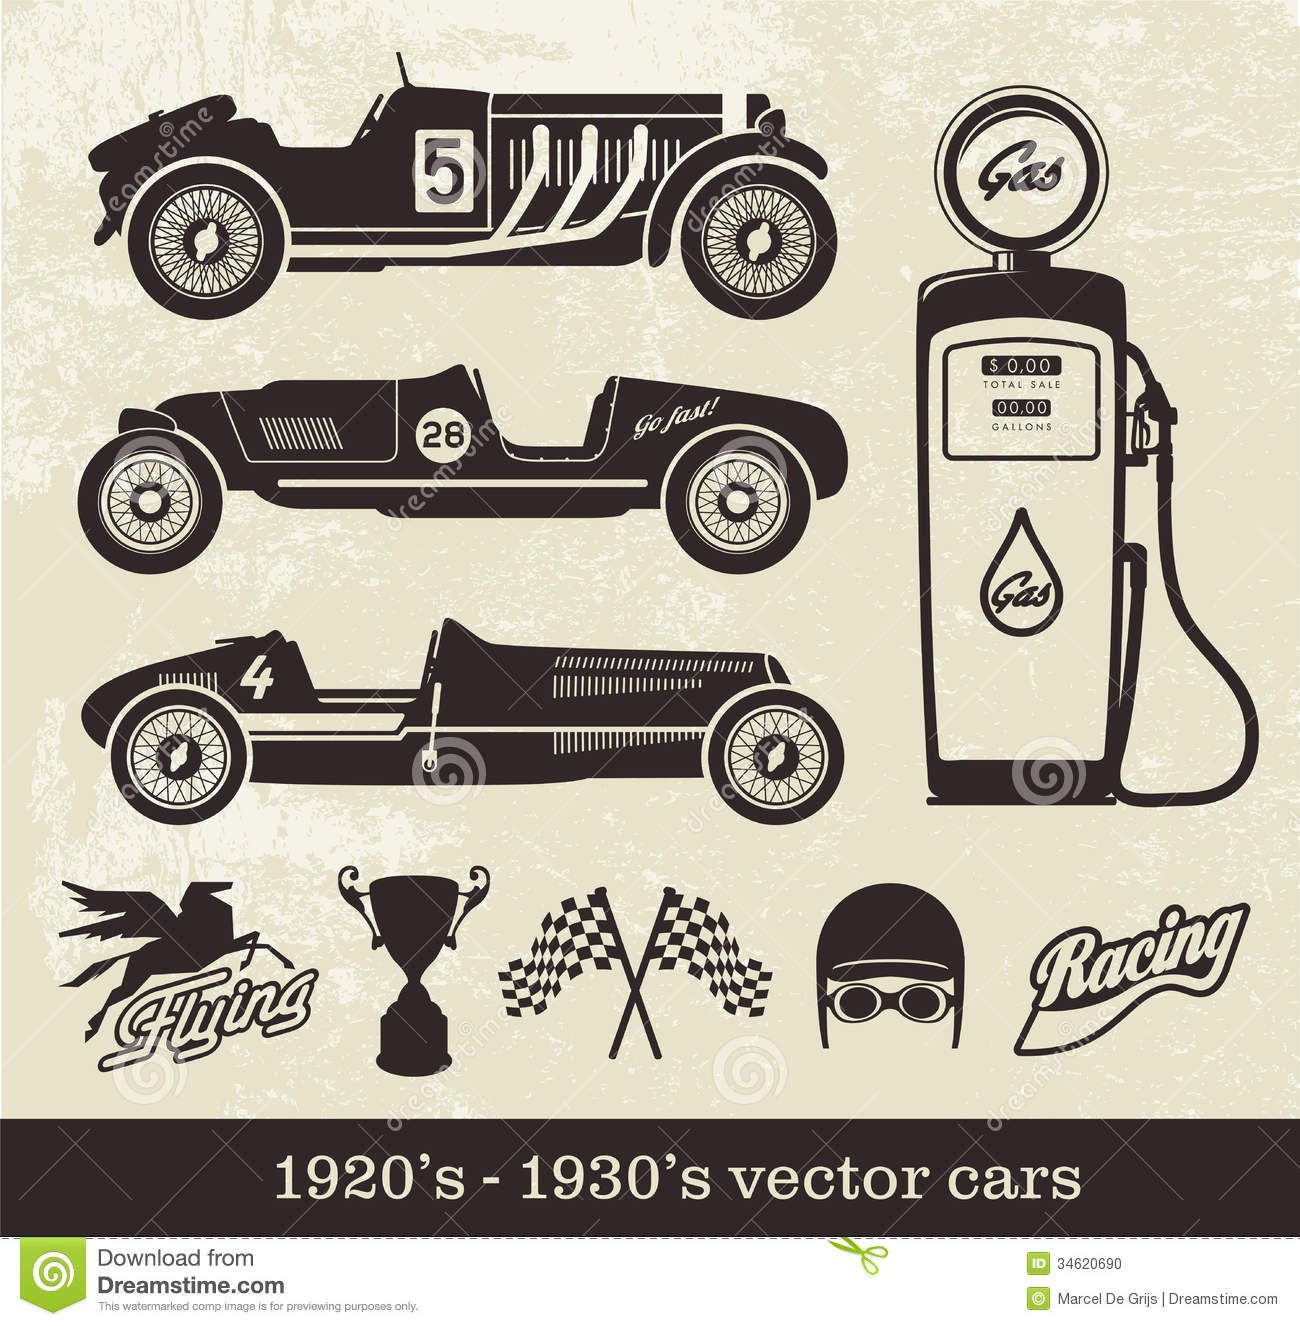 vintage vehicle blueprints - Google Search | Transportation ...